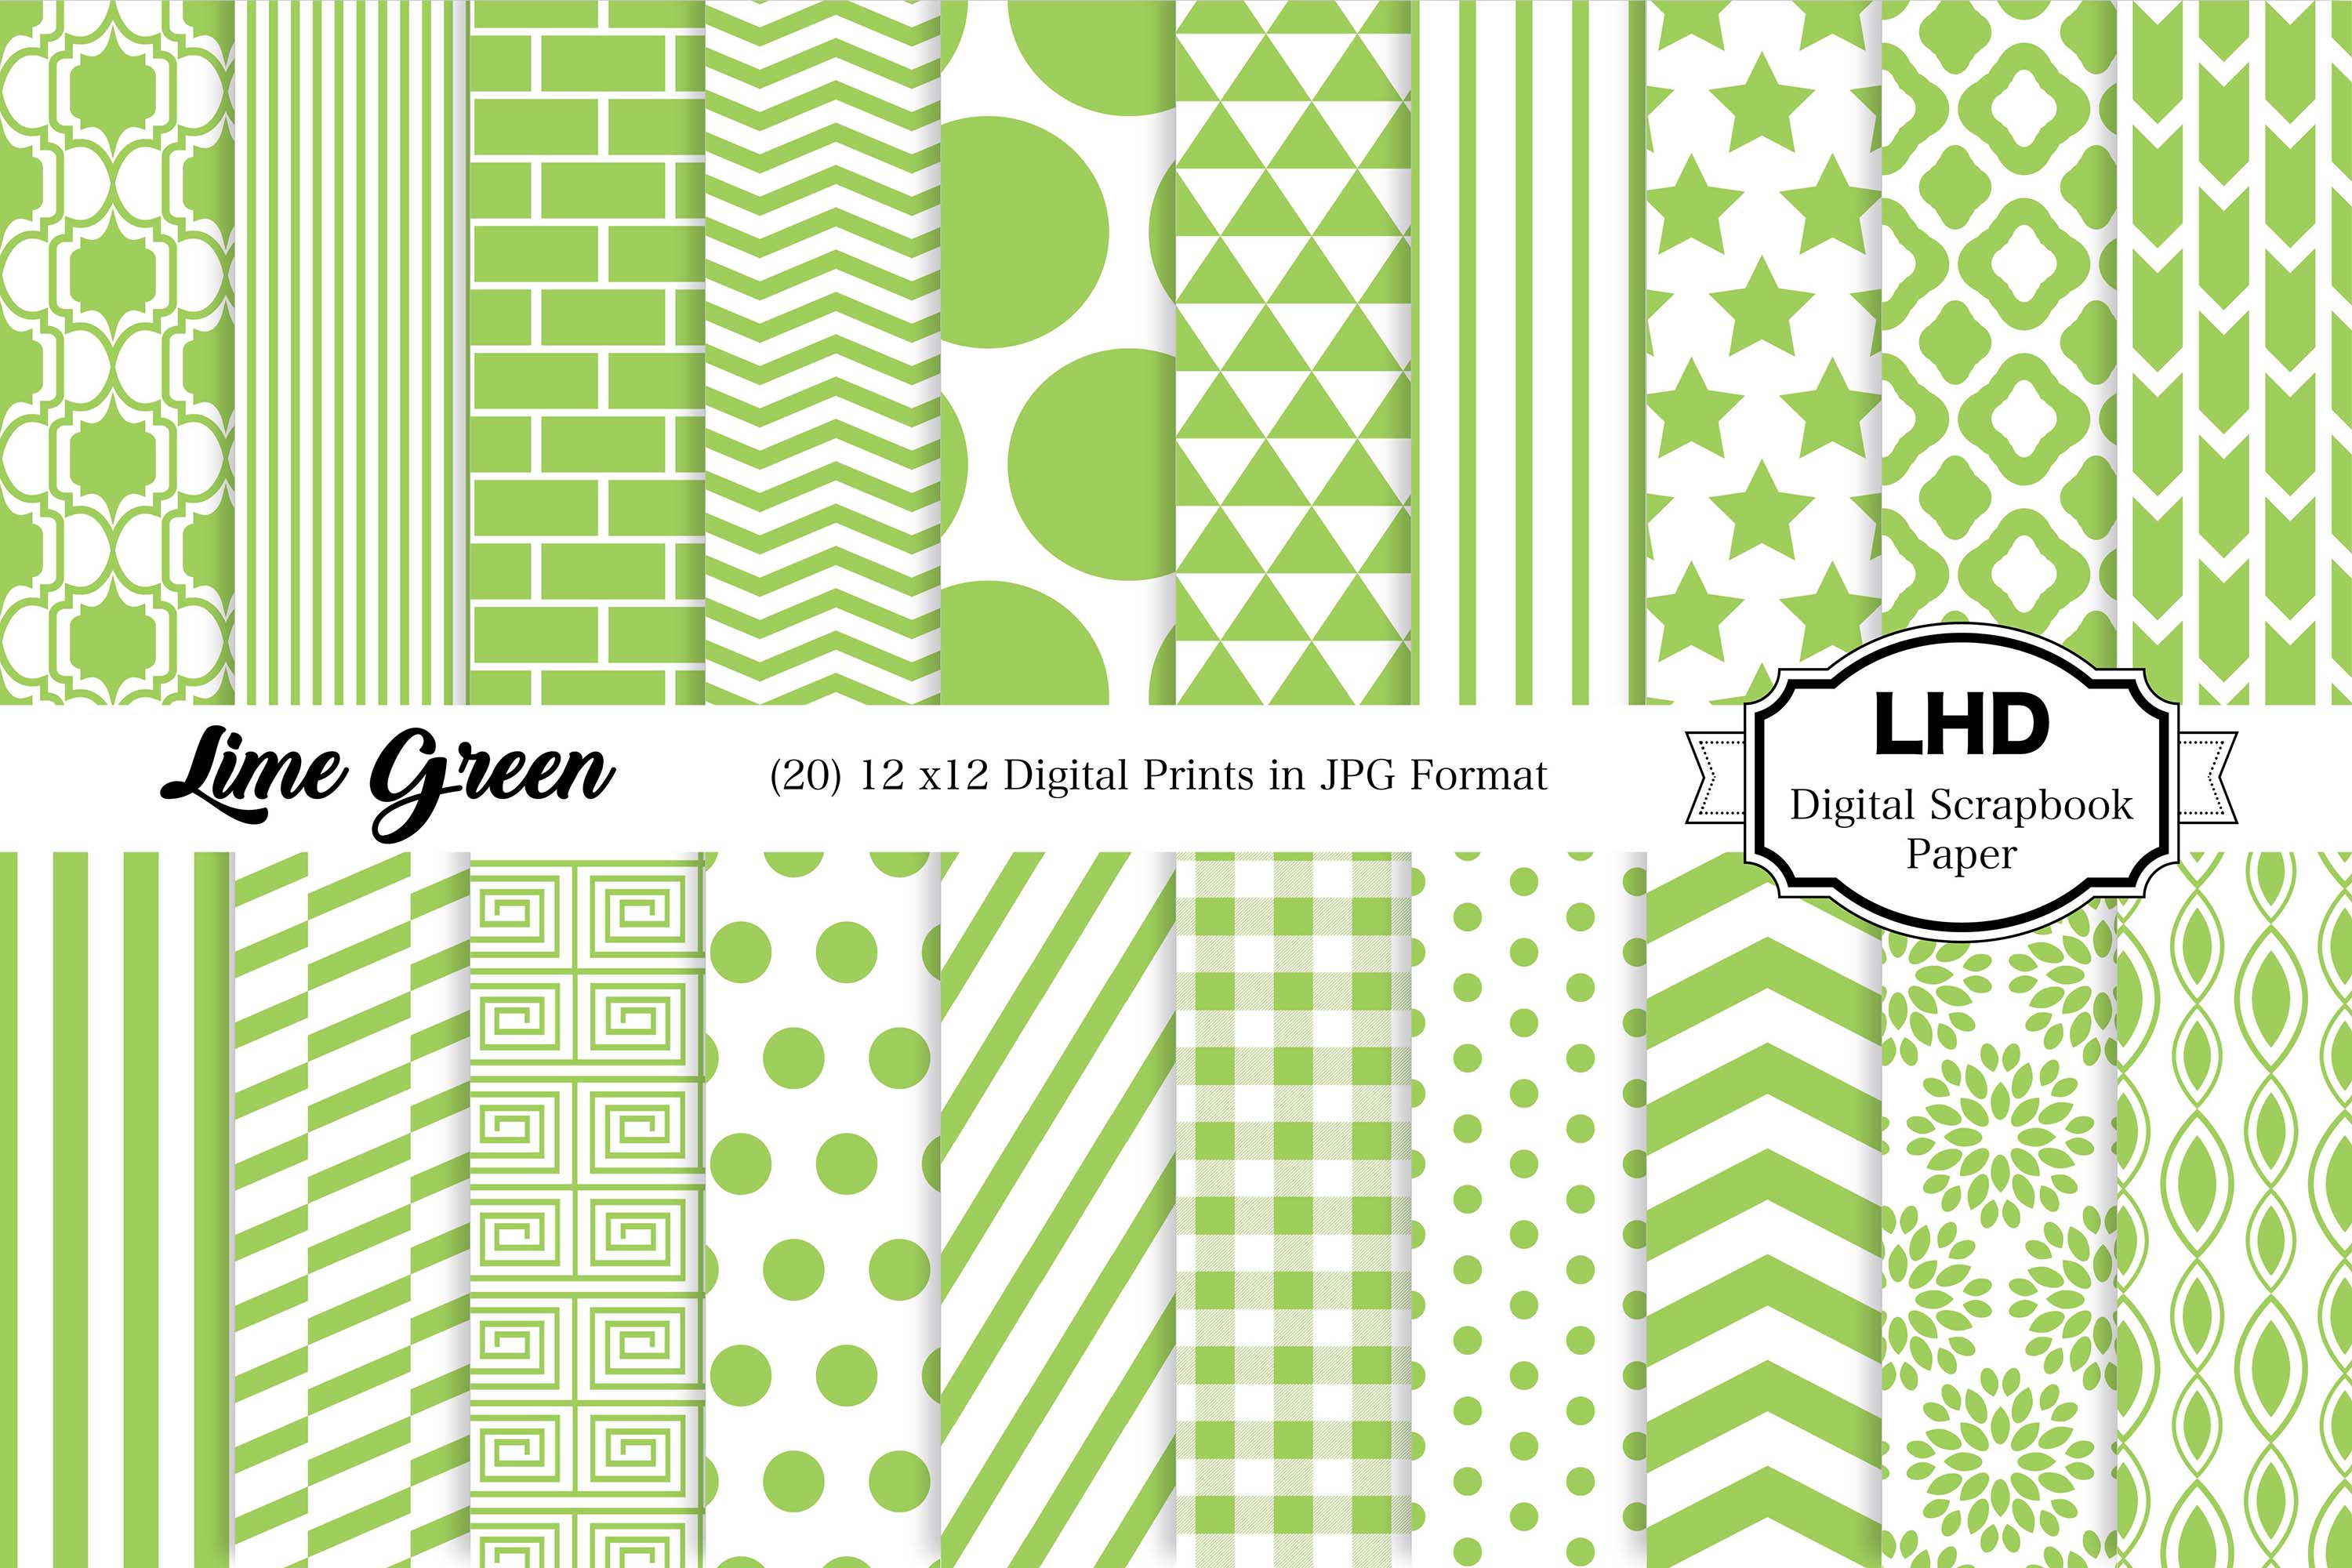 Free Chevron Apple Svg File Free Svg Cut Files Create Your Diy Projects Using Your Cricut Explore Silhouette And More The Free Cut Files Include Svg Dxf Eps And Png Files